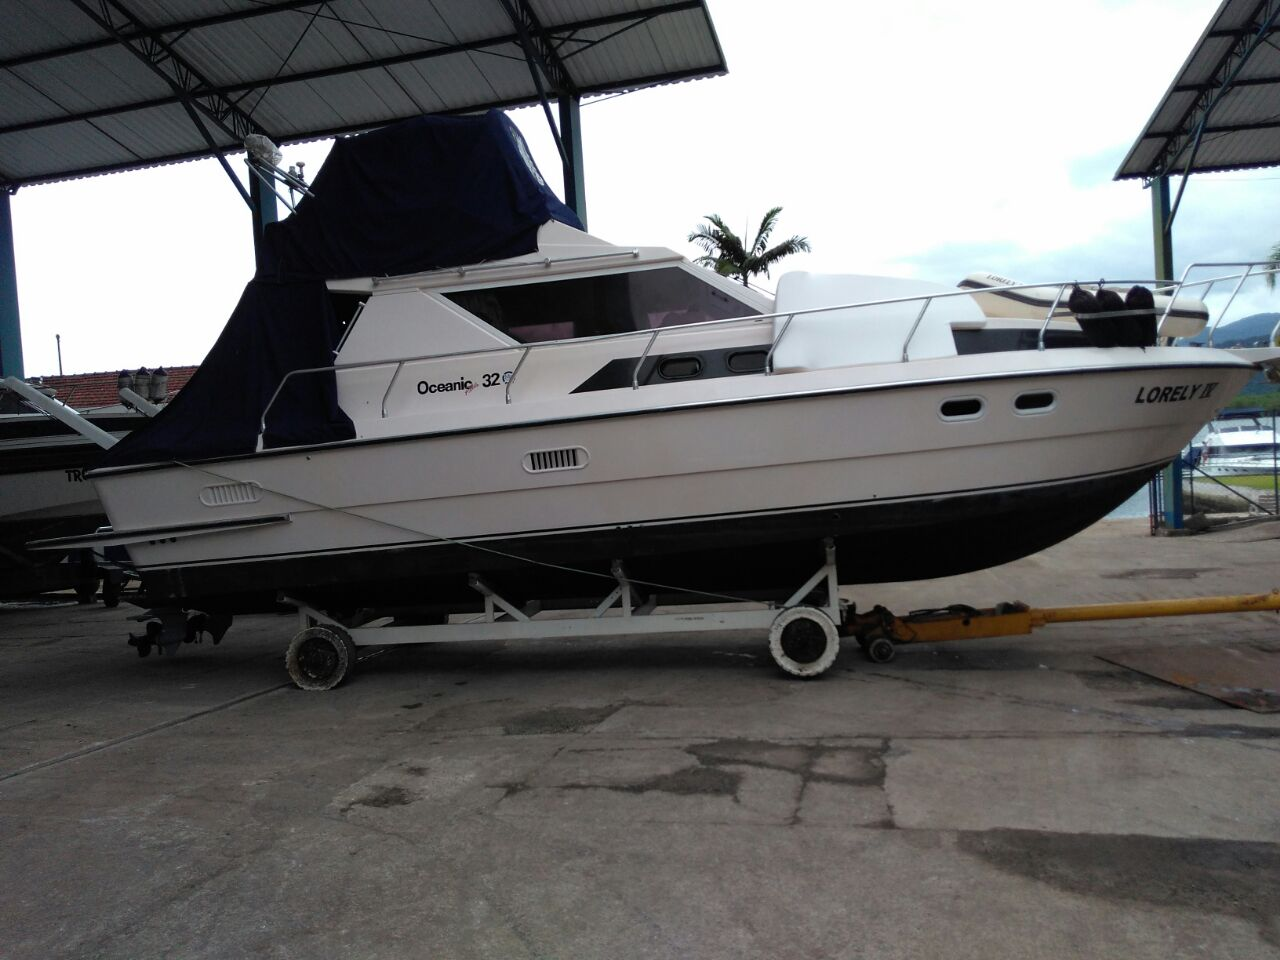 Intermarine Oceanic 32